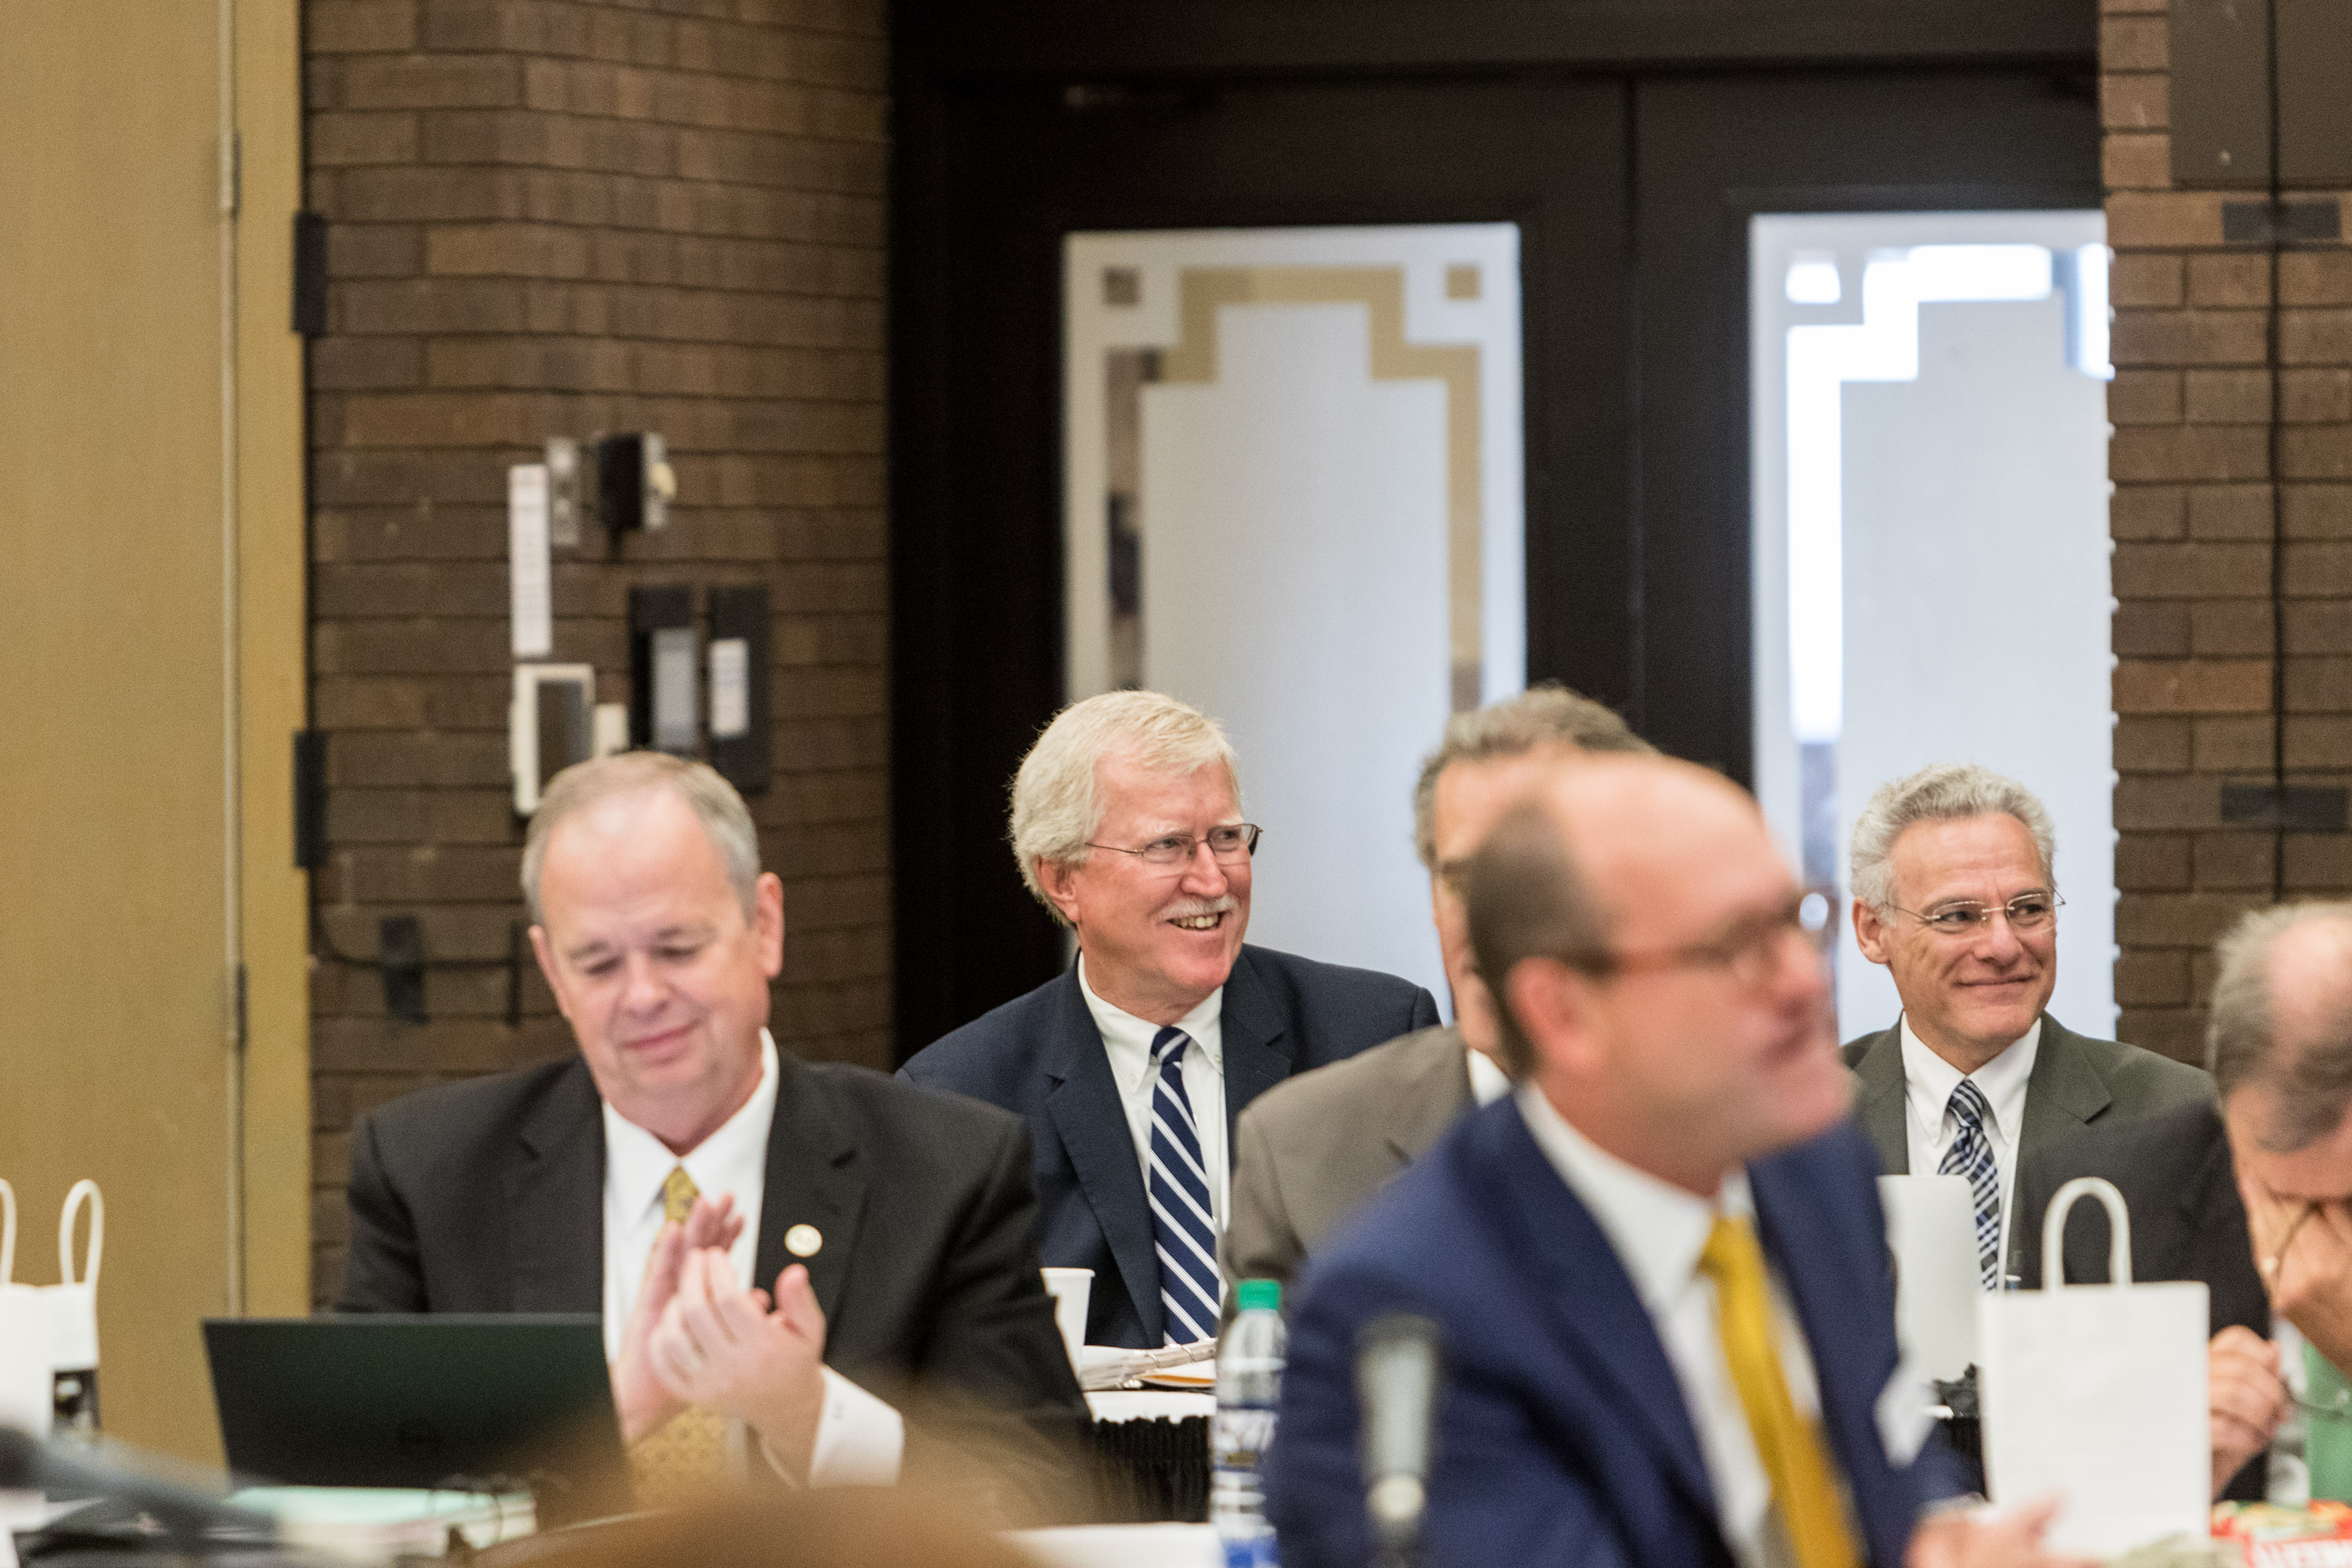 Photo of Jim Henderson at Board of Regents meeting hosted by UW-Milwaukee on June 6, 2019. (Photo by Mikaila Dusenberry/UW-Milwaukee)